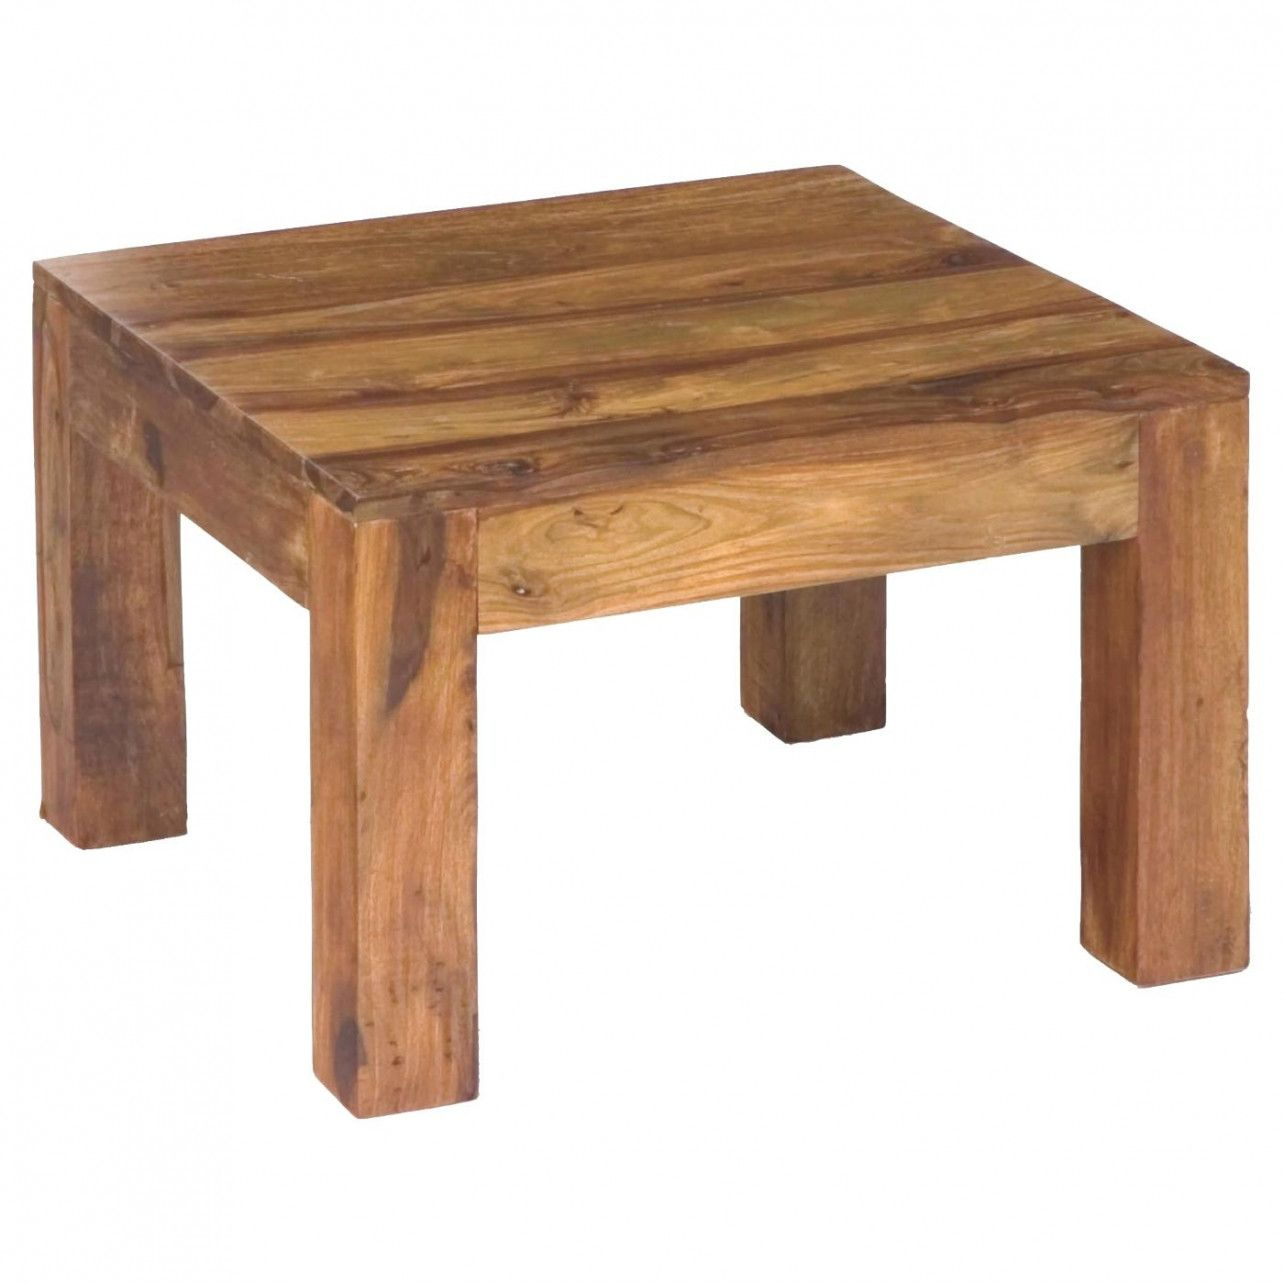 50 Beautiful Square Wooden Coffee Table 2018 Unique Coffee Table